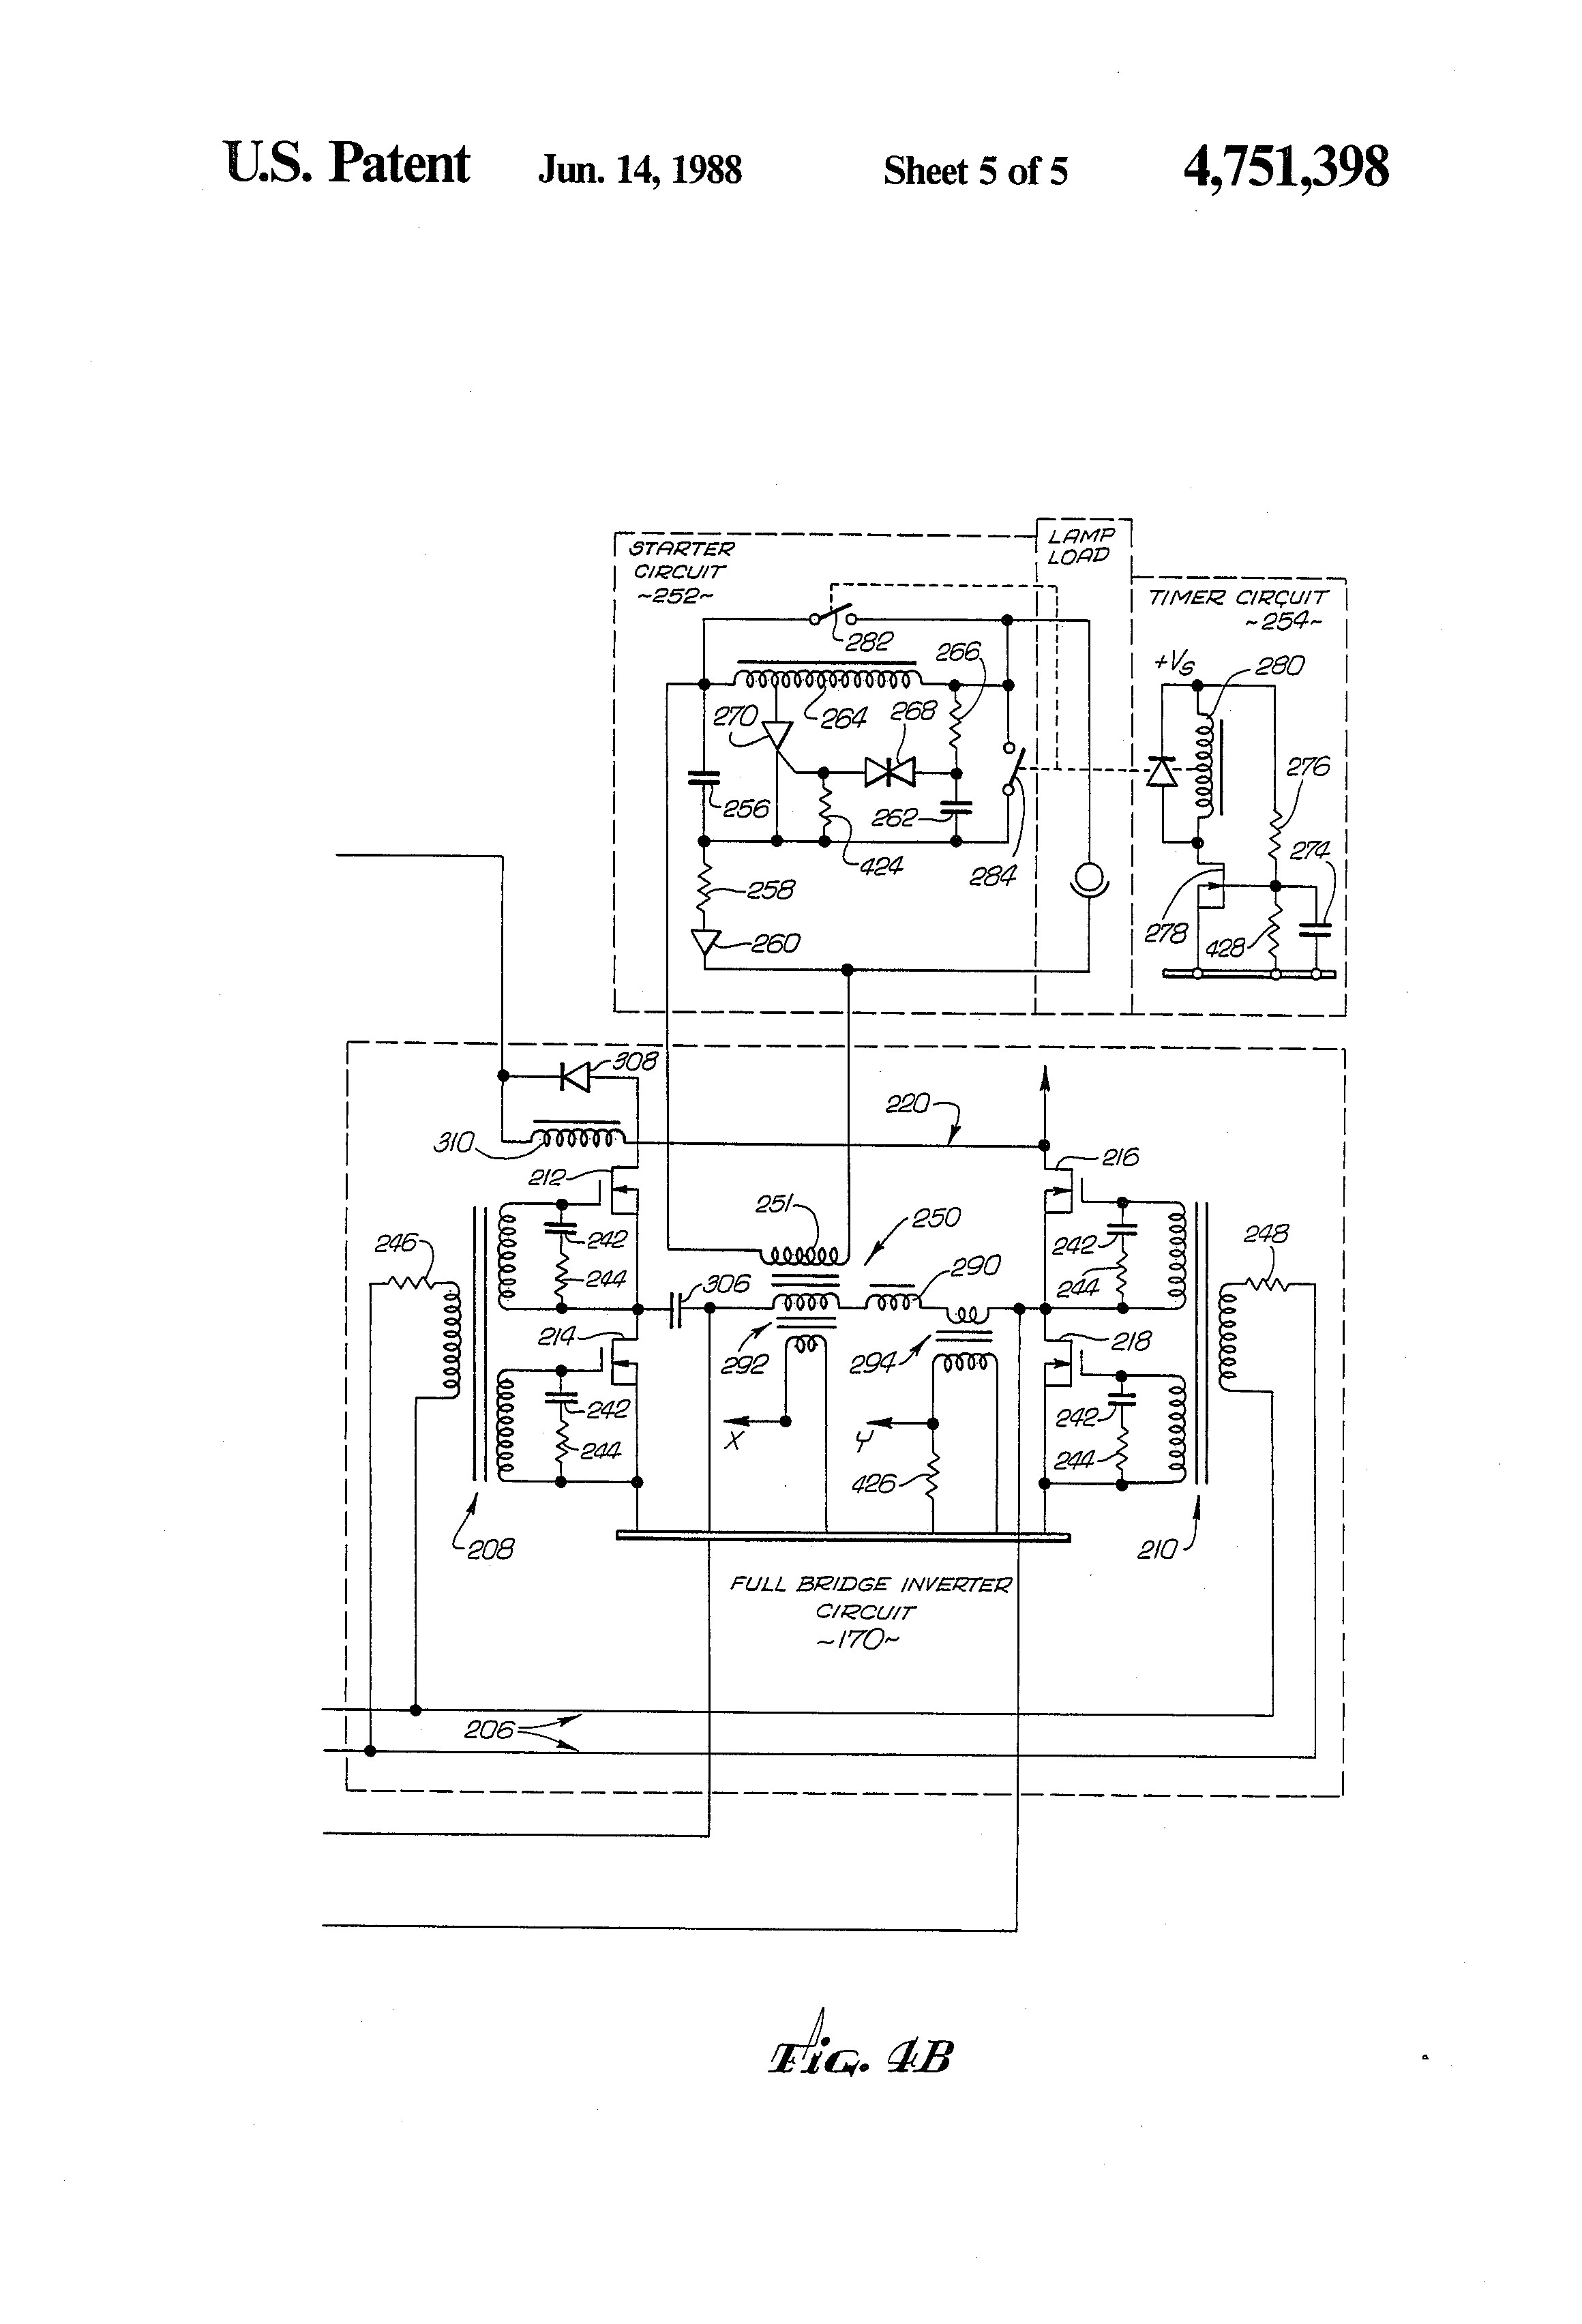 bodine b90 wiring diagram 15 17 sg dbd de \u2022get bodine b100 wiring diagram download rh worldvisionsummerfest com bodine emergency wiring diagram bodine b90 wiring old